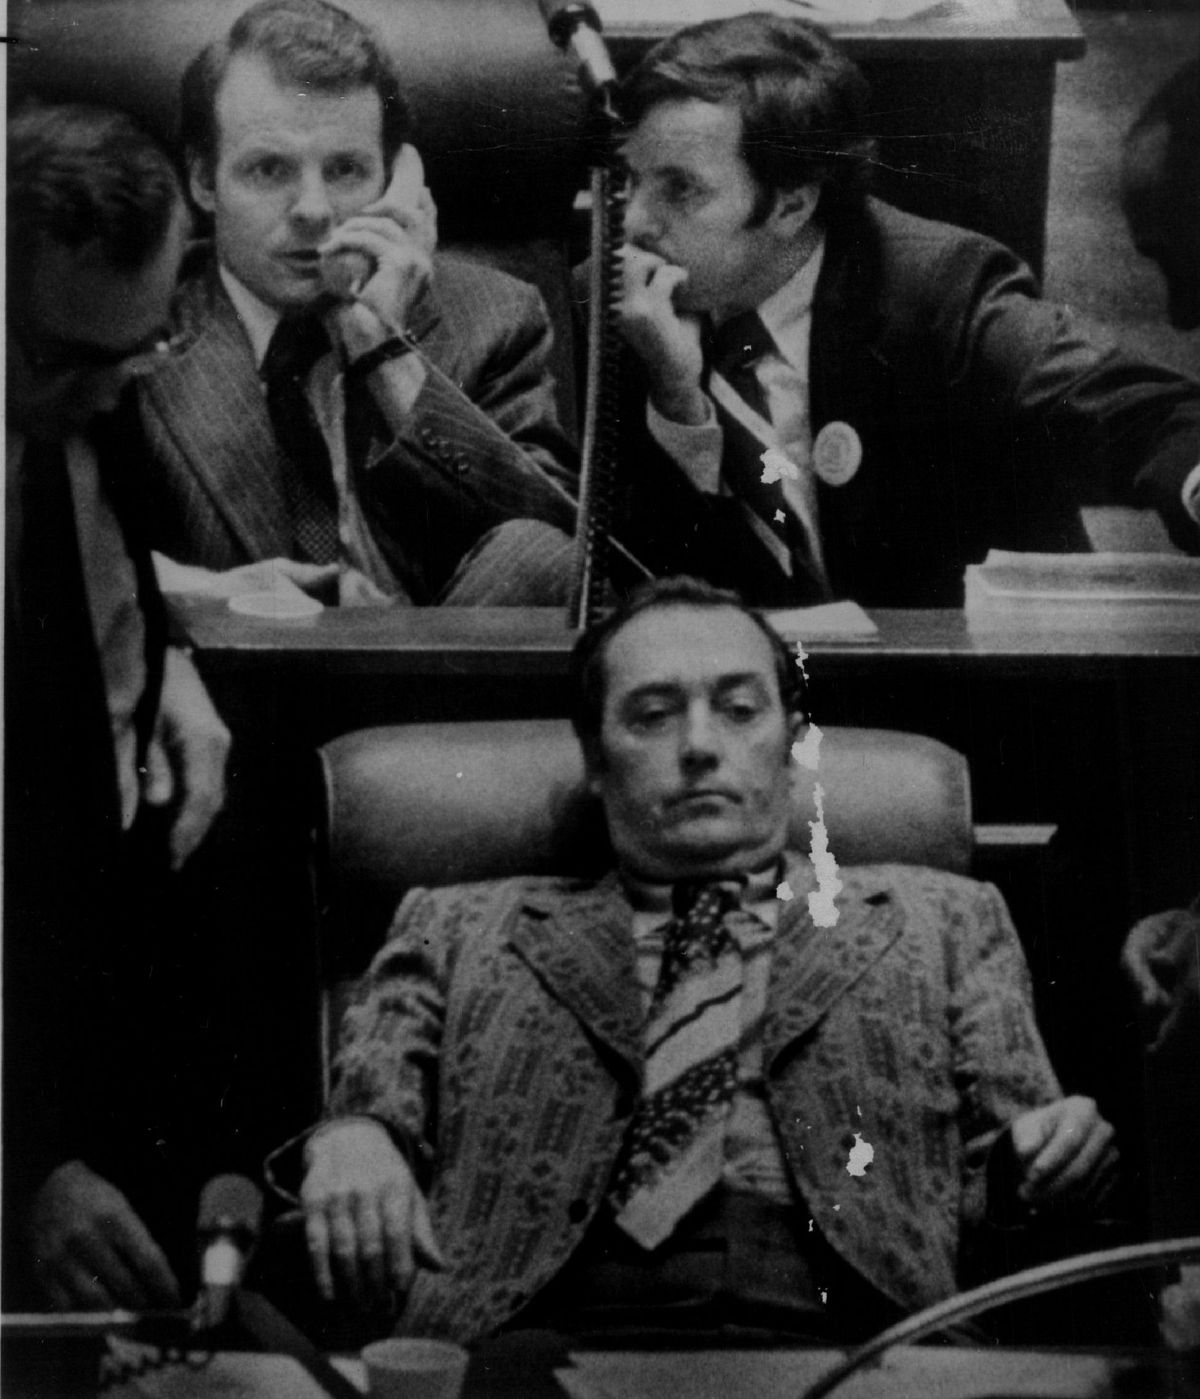 Then-Rep. Michael Madigan (left) pictured in 1975 alongside then-Sen. Richard M. Daley in the state Capitol.